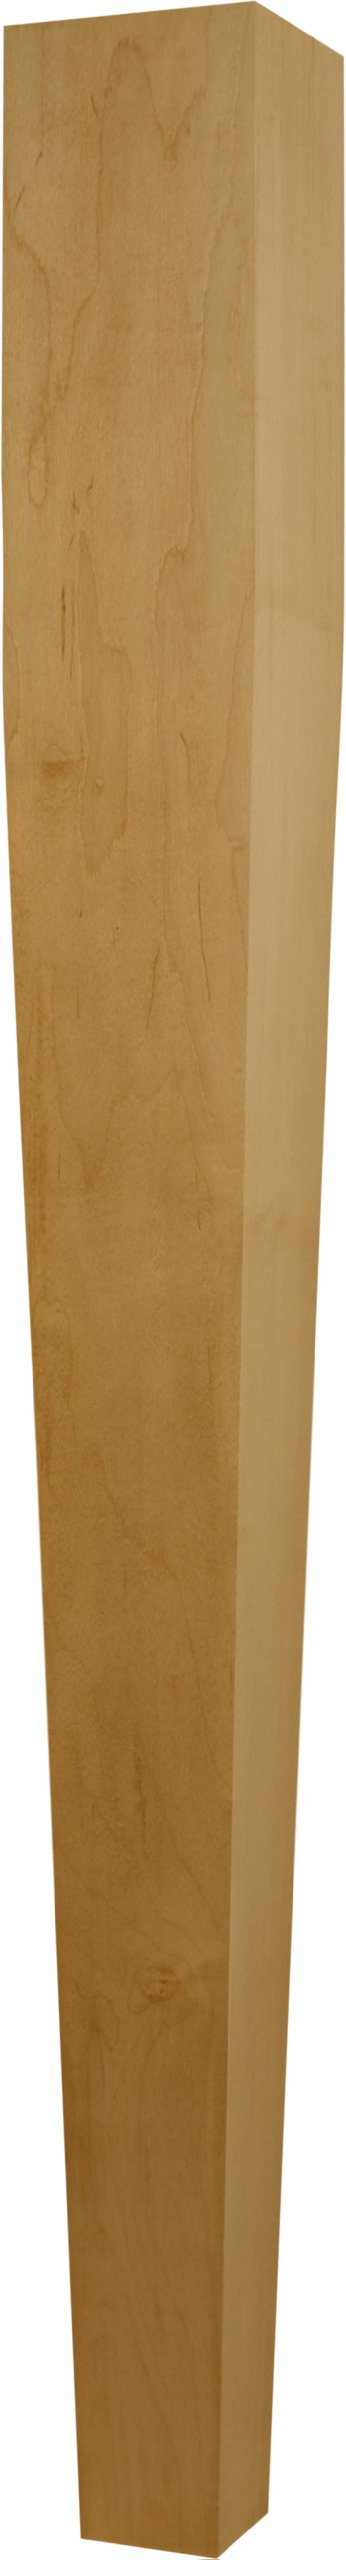 Single Unfinished Tapered (Four Sided) Island Post in Soft Maple - Dimensions: 34 1/2 x 3 1/2 inches